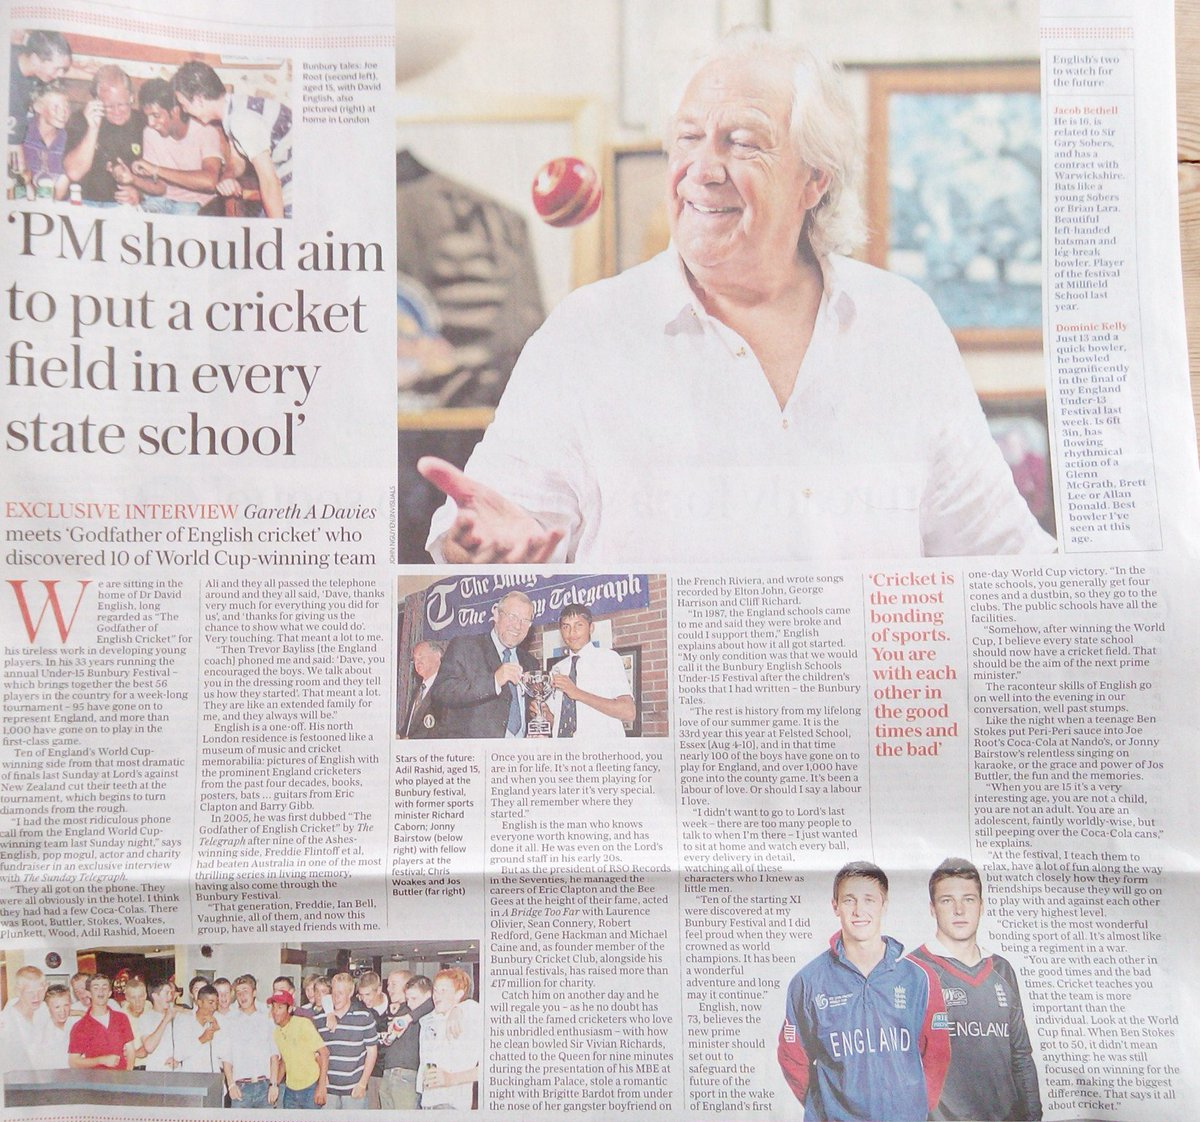 Please grab a copy of the Daily Telegraph today Magnificent feature/ interview with Bunbury founder Dr David English CBE, talking the Origins of Bunbury, this years festival and last weeks miracle world cup win @GarethADaviesDT @telecricket @Telegraph @englandcricket